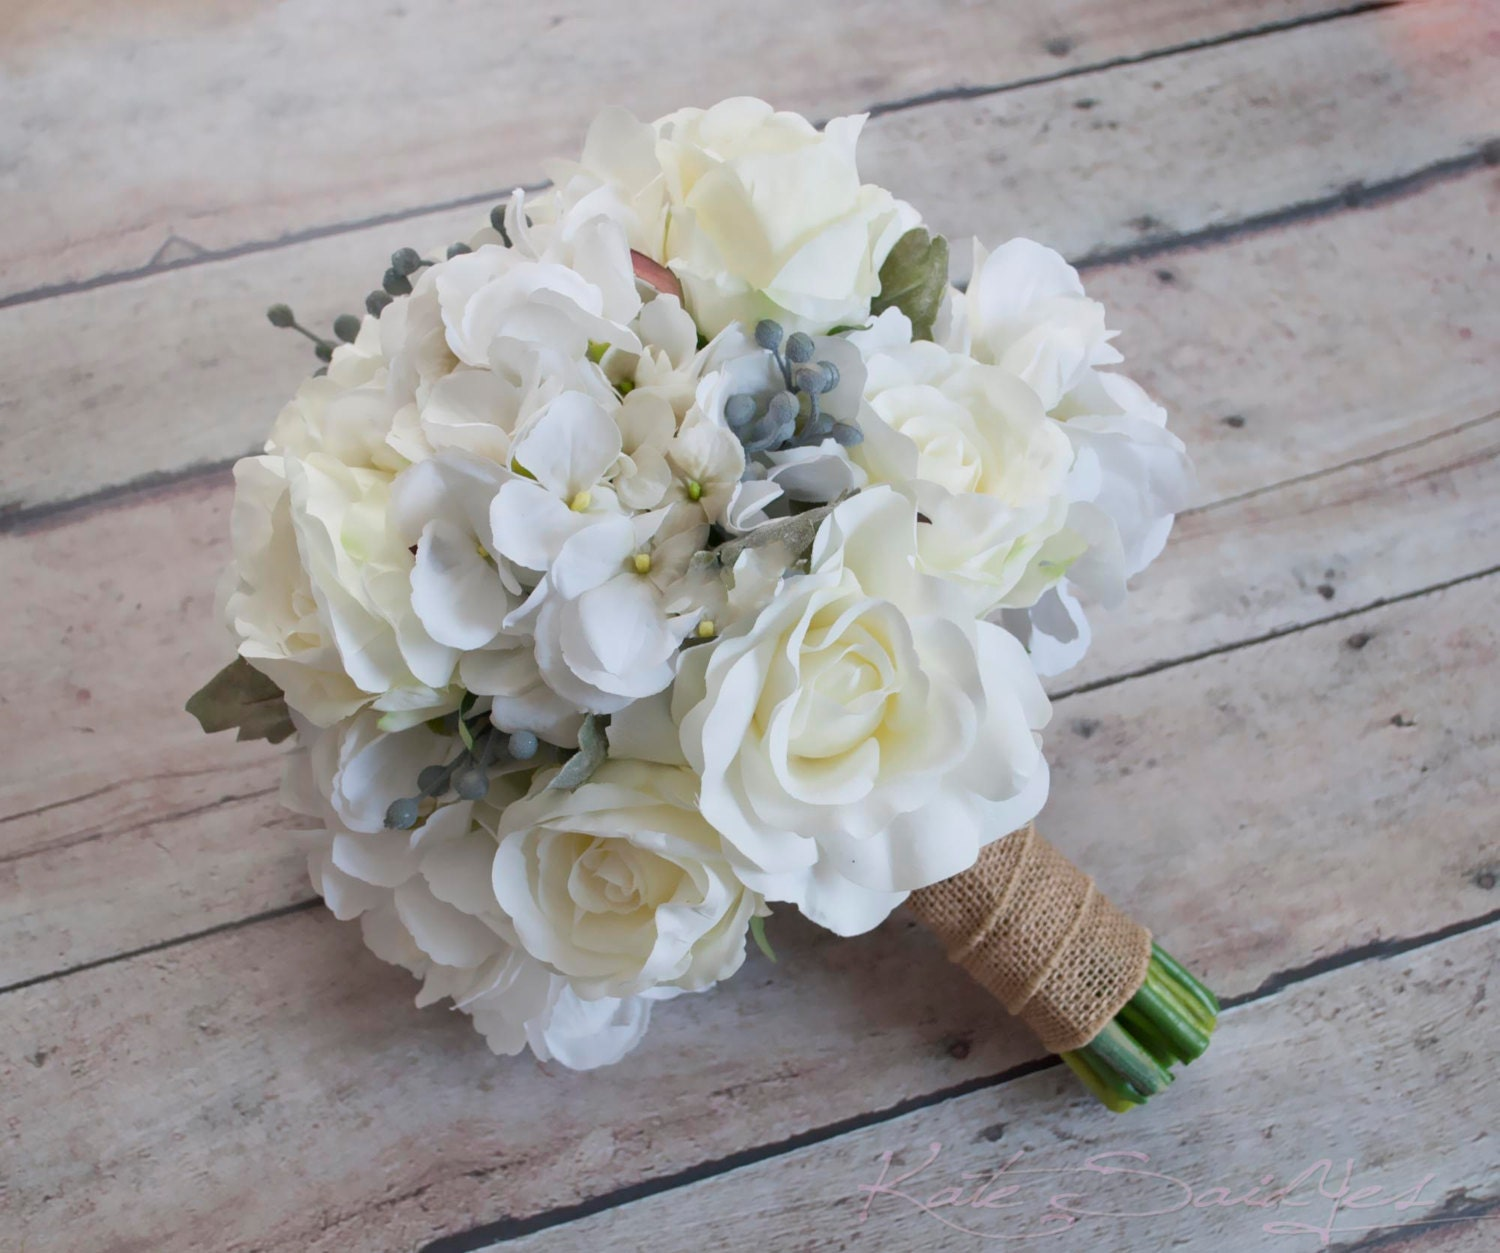 Wedding White Hydrangea: White Rose And Hydrangea Wedding Bouquet With Silver Brunia